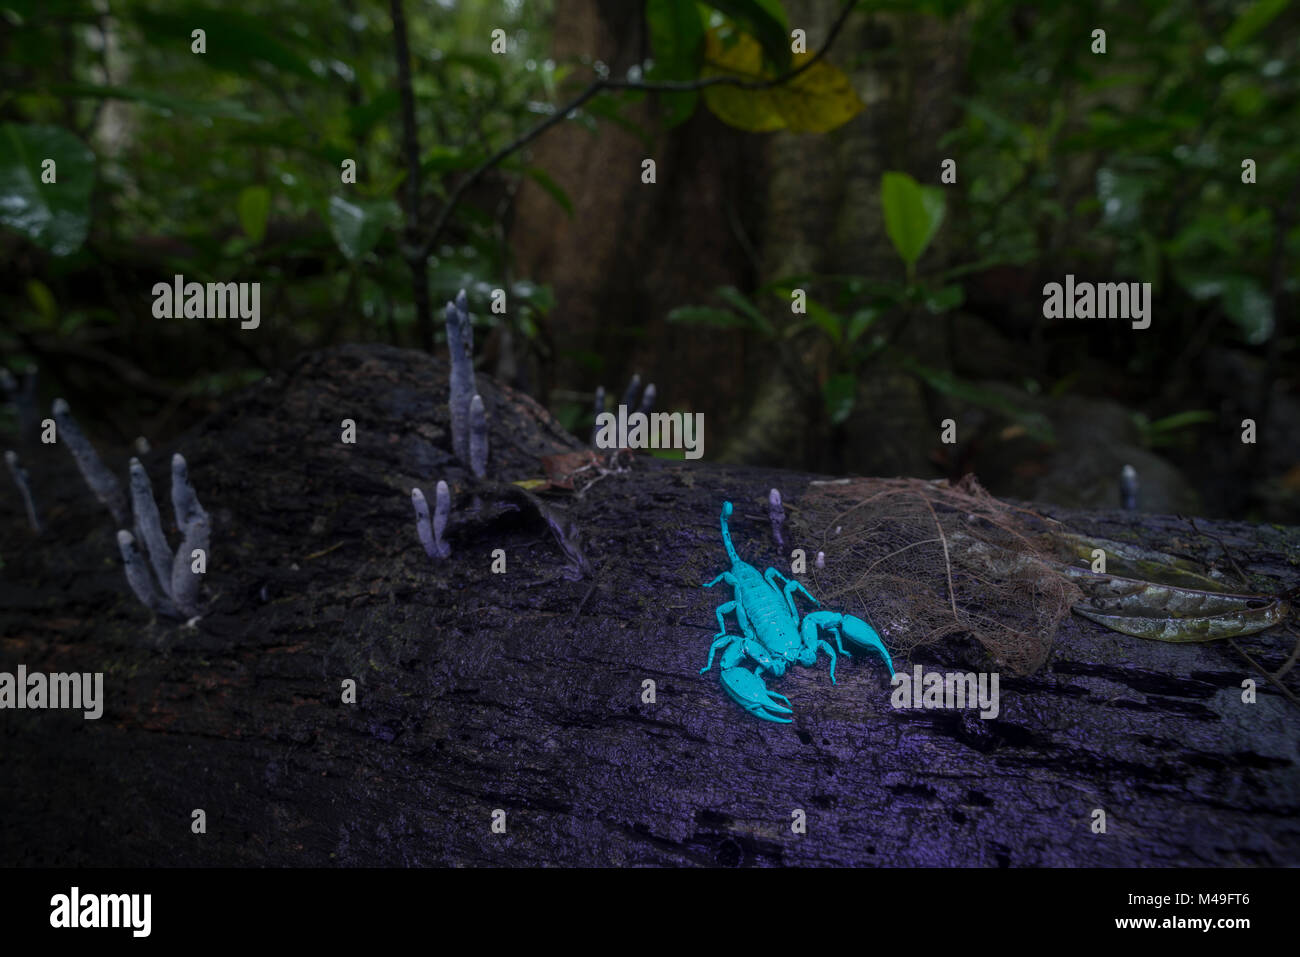 Rainforest scorpion glowing blue in UV light at night.  Queensland, Australia. - Stock Image